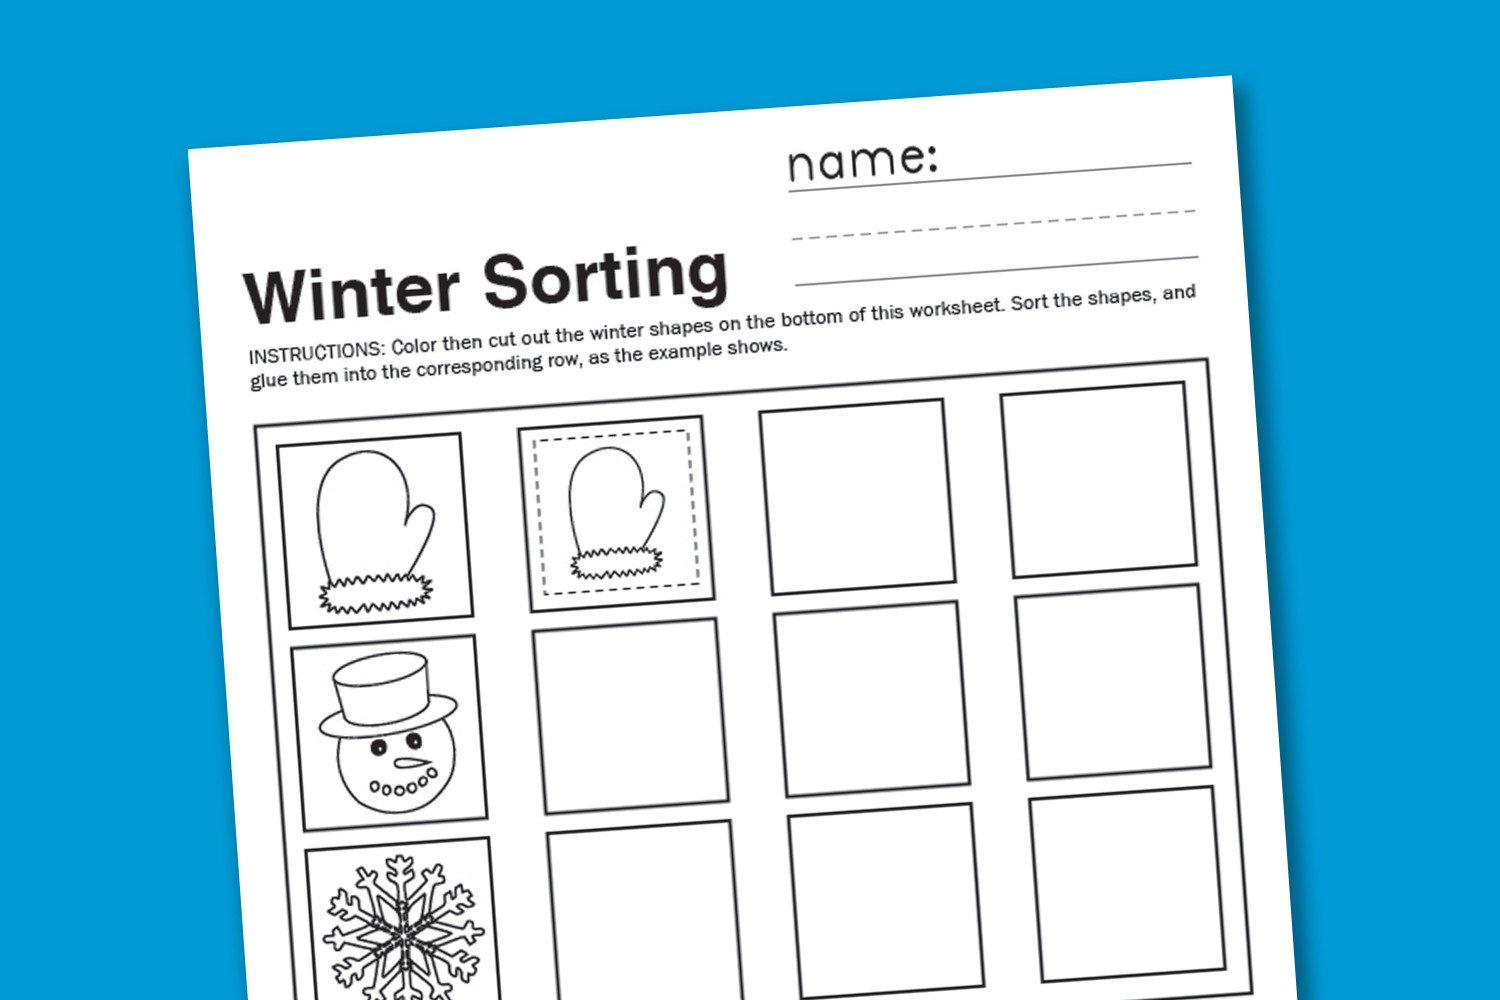 Sorting Worksheets for Kindergarten Winter sorting Worksheet Paging Supermom